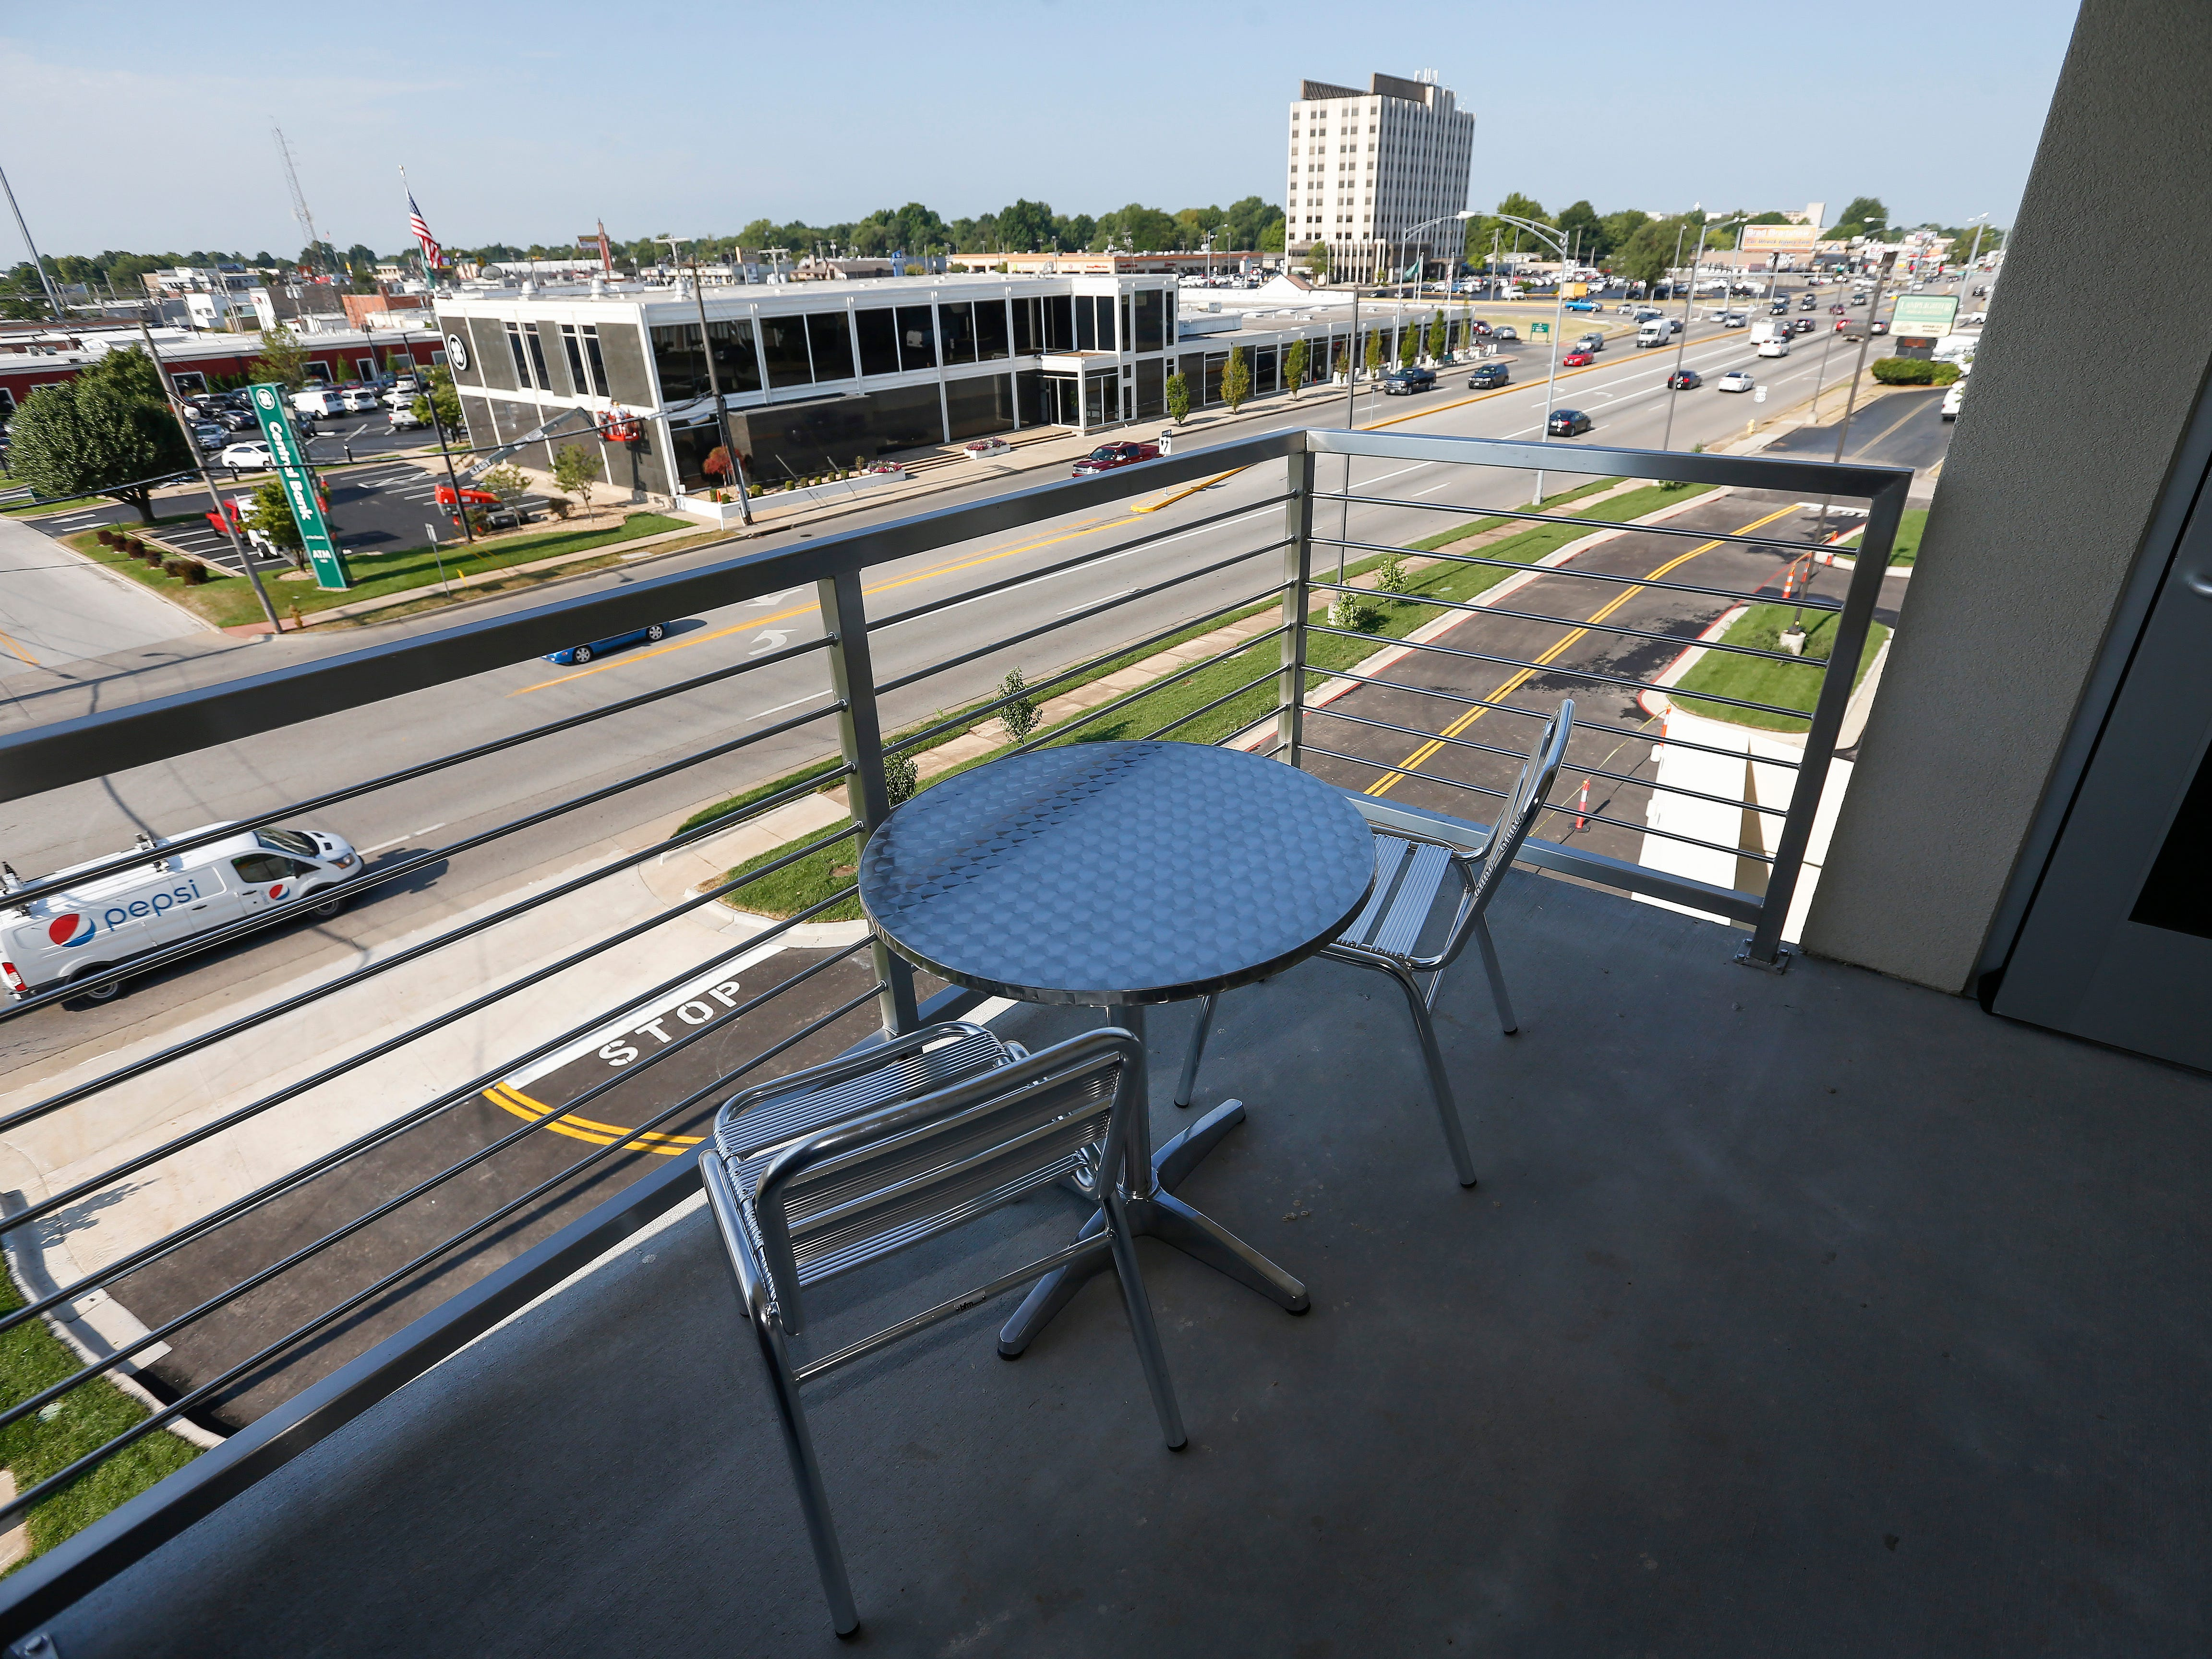 The view from one of the balcony rooms at the new Vib Hotel, located at 1845 E Sunshine St. The hotel will hold its grand opening on Friday, Aug. 10, 2018.